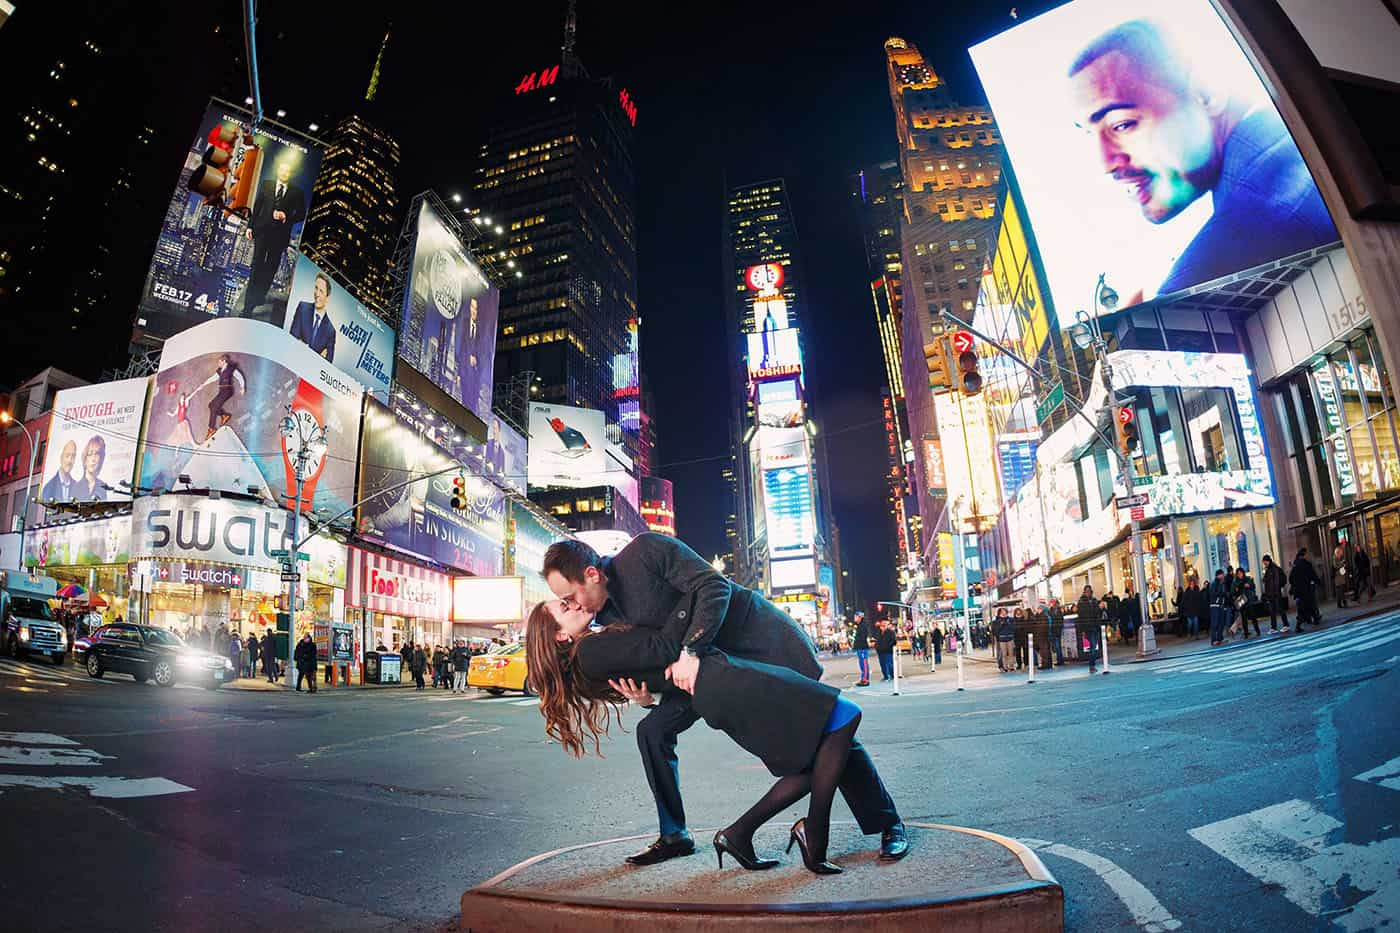 This is the Key to Amazing Client Relationships | A man dips and kisses his partner in a major Times Square intersection at nighttime.